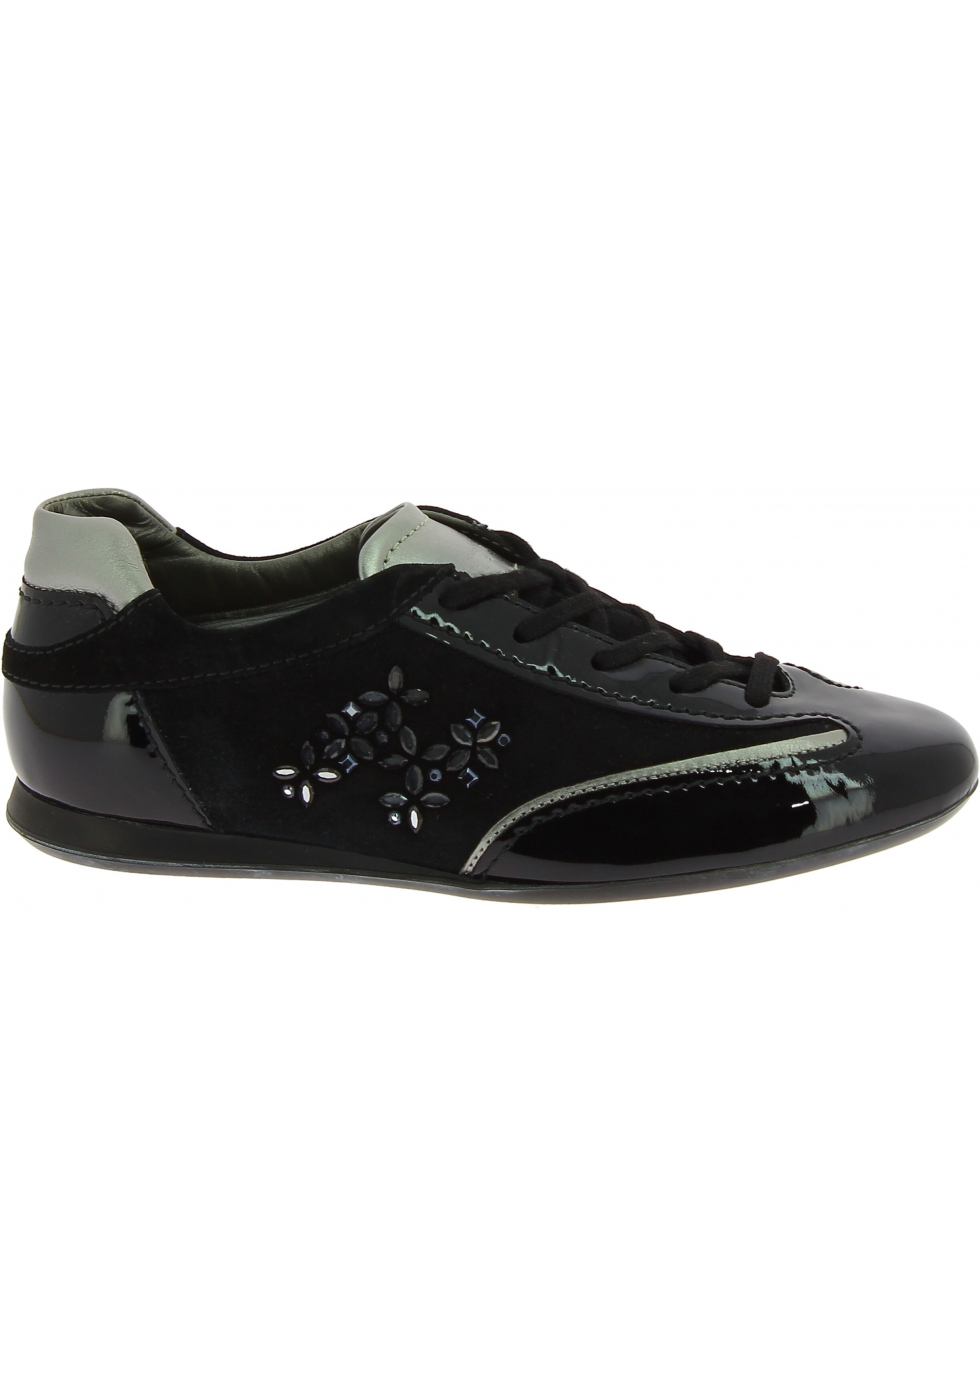 Hogan Women's round toe low top sneakers shoes in black patent and ...